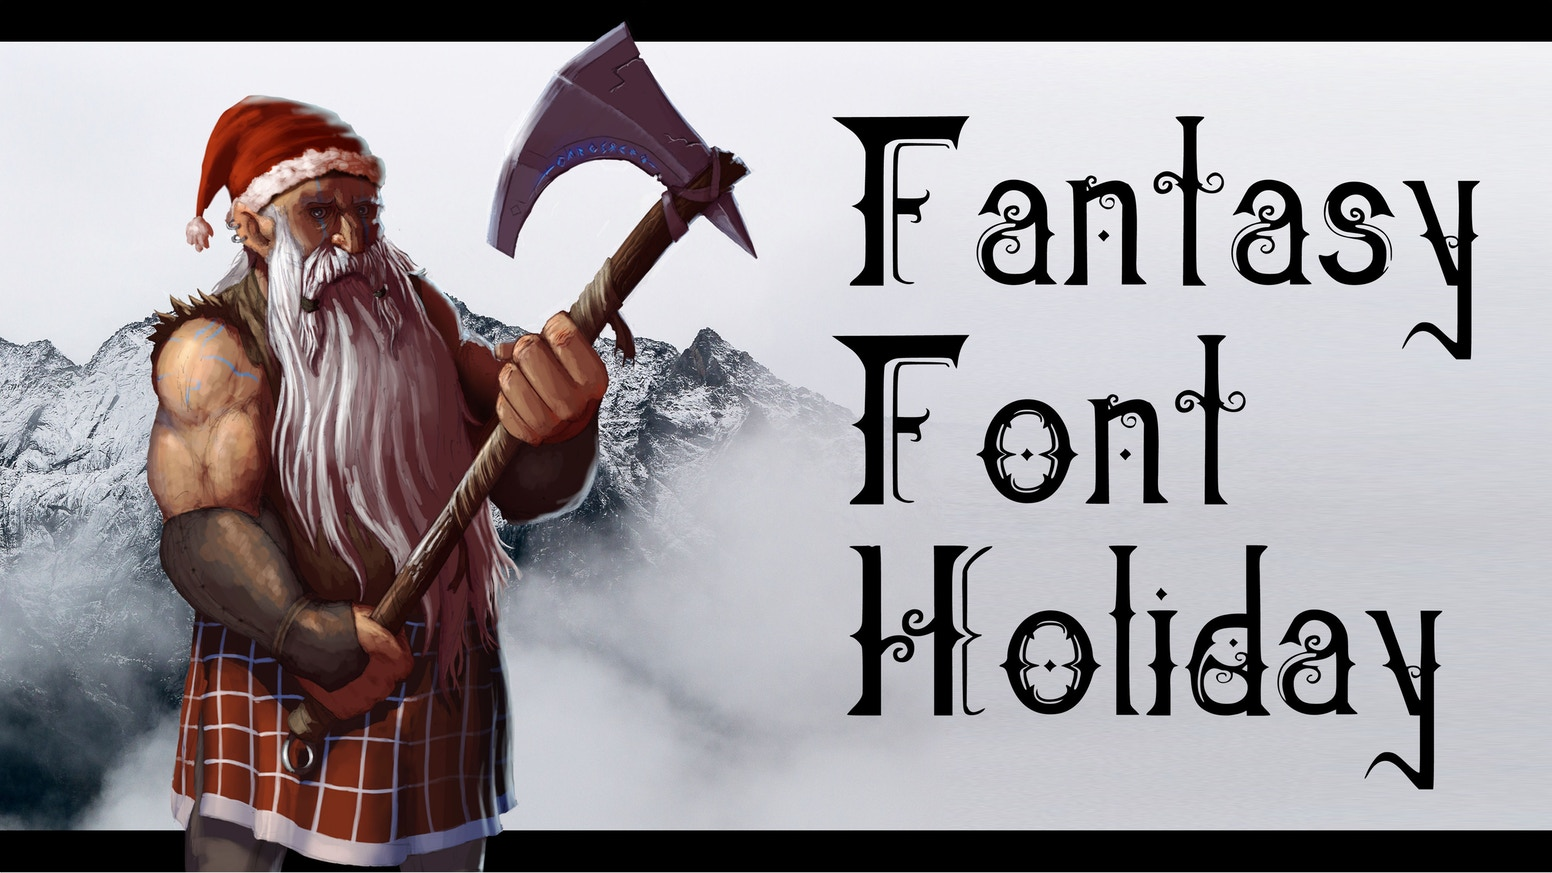 A special font with more than 60 characters created to meet your festive fantasy needs. Get it before Christmas!